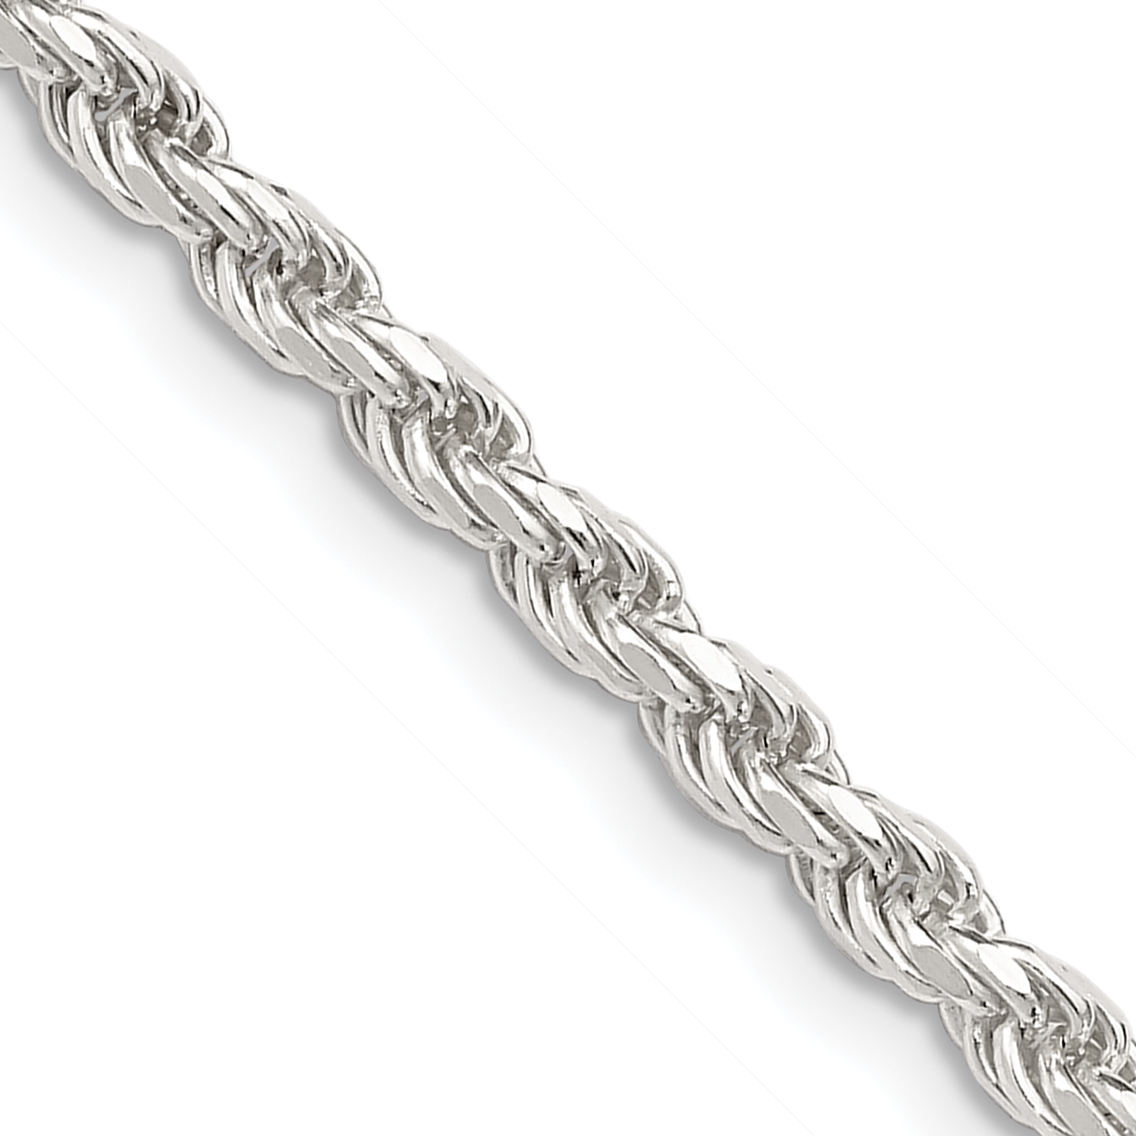 925 Sterling Silver 3mm Link Rope Necklace Chain Pendant